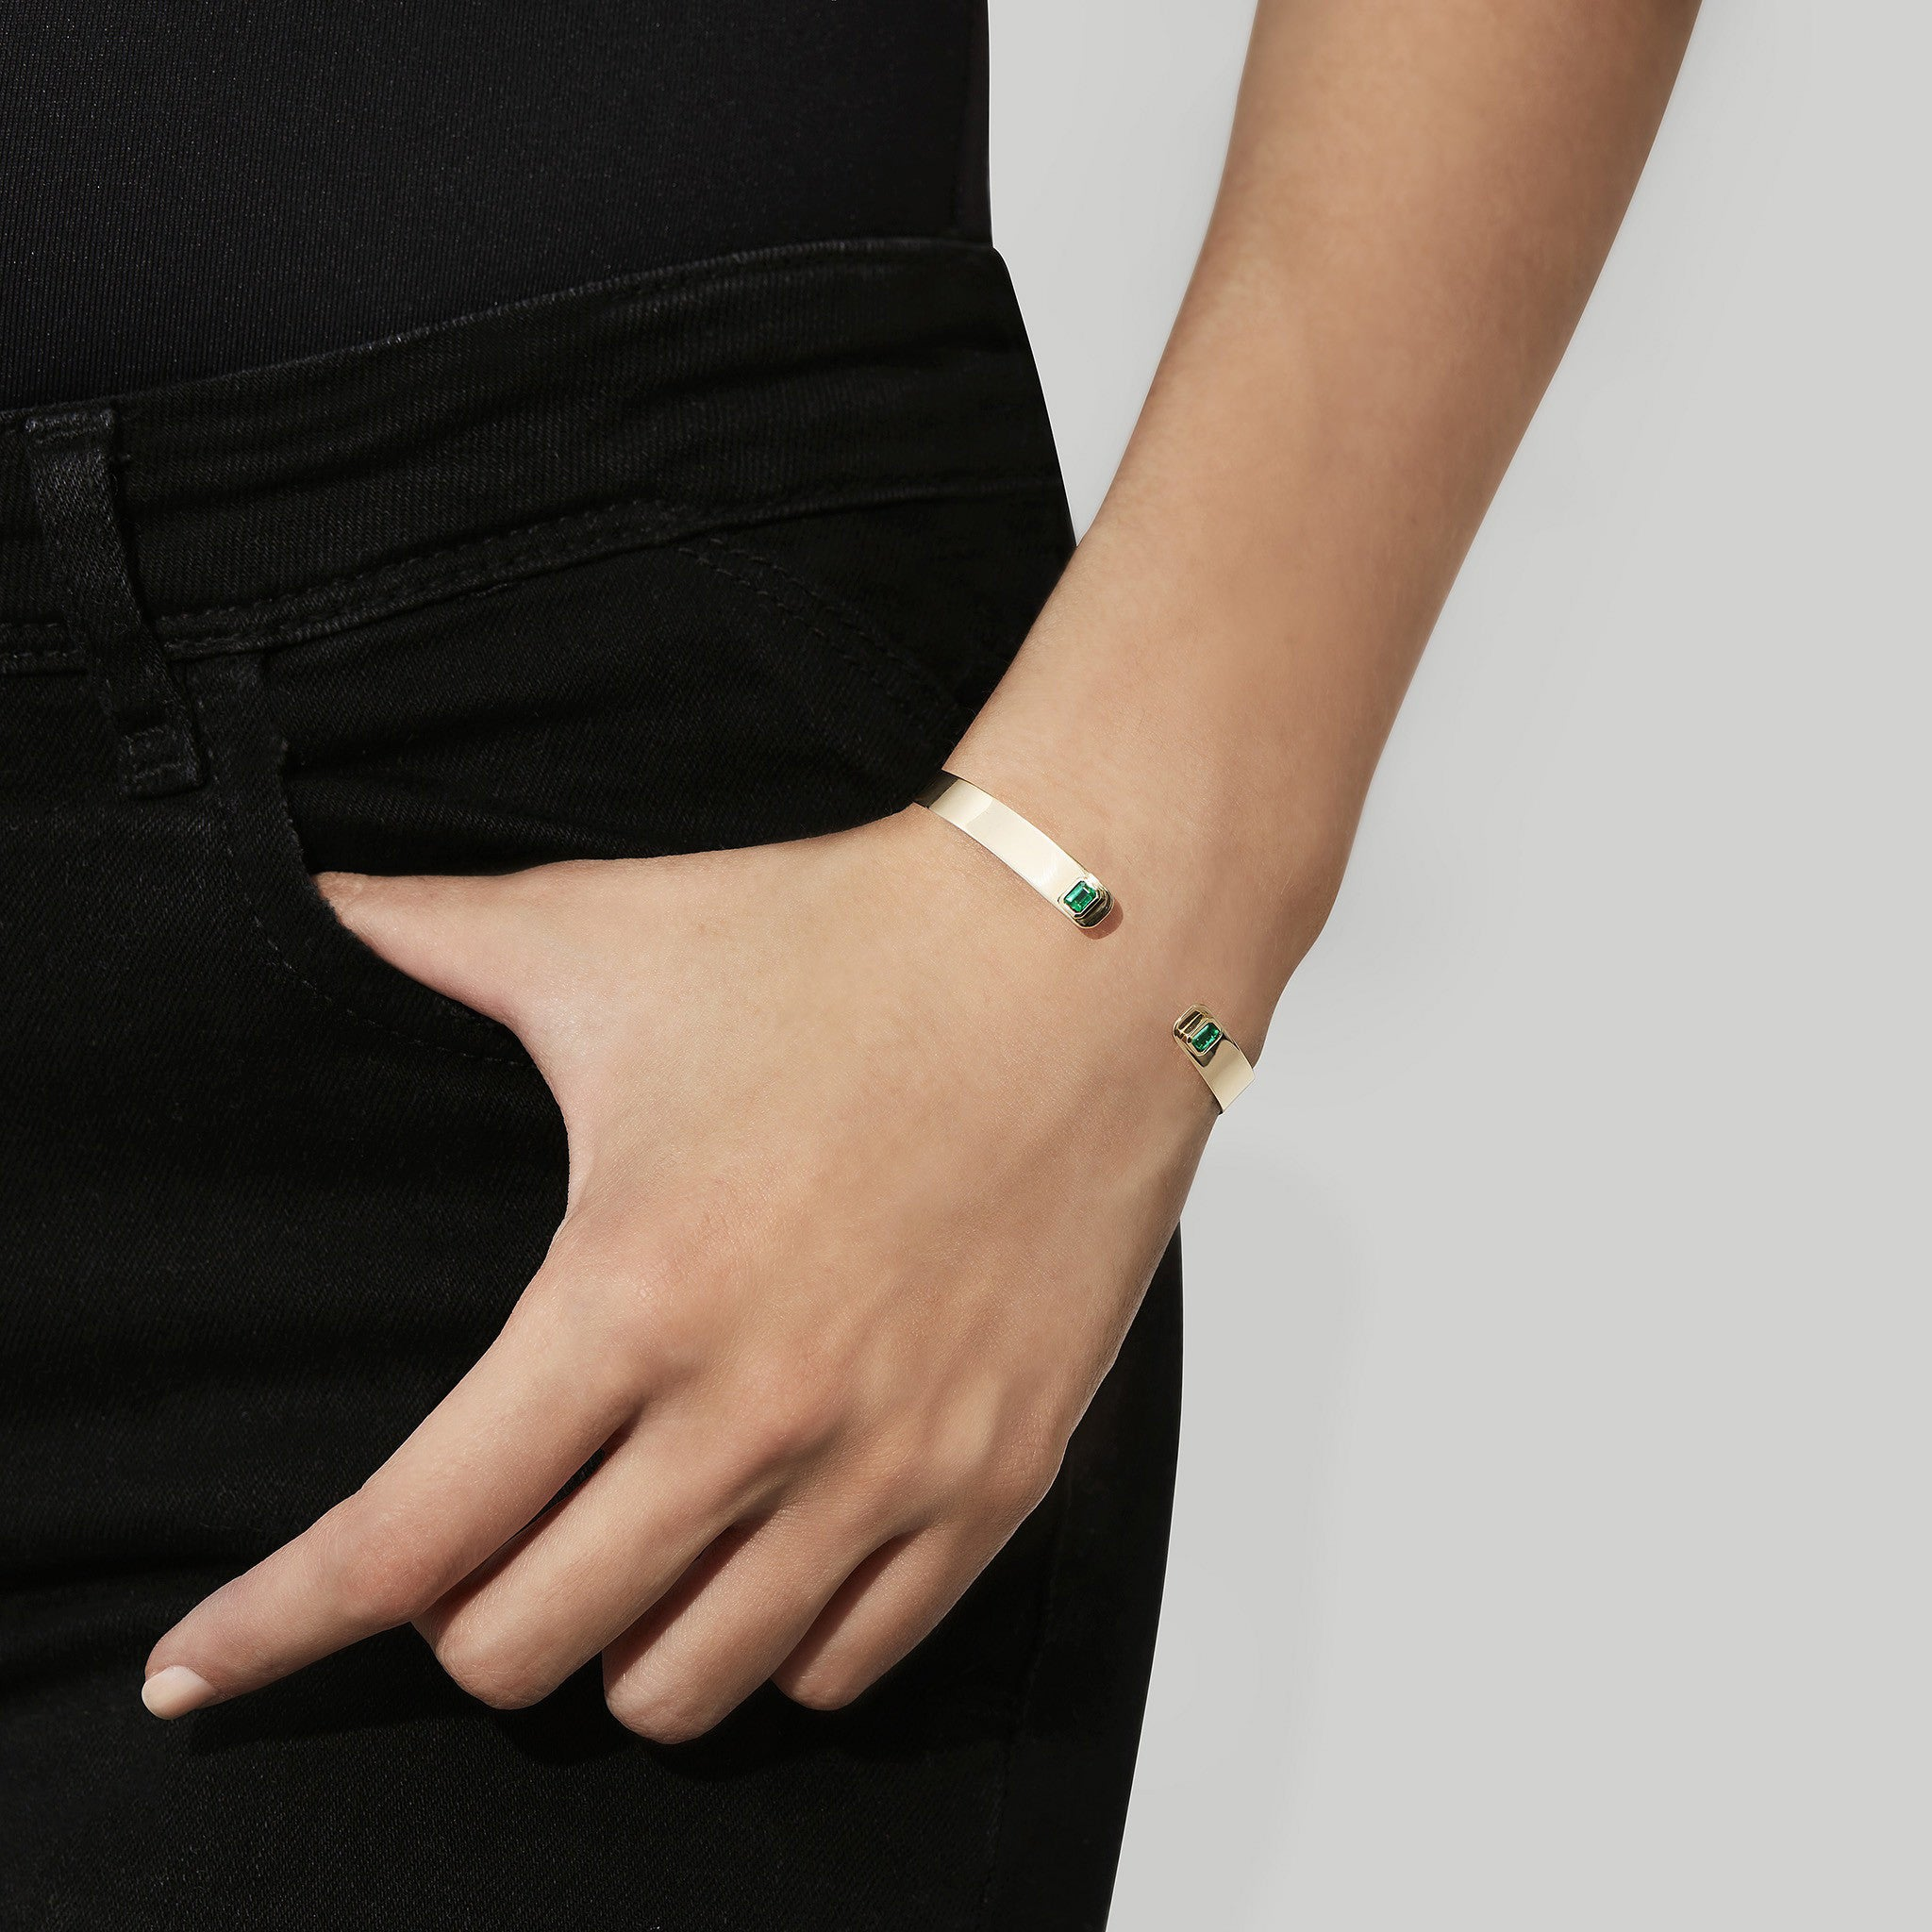 Prive Emerald Cuff by Jemma Wynne - Jemma Wynne